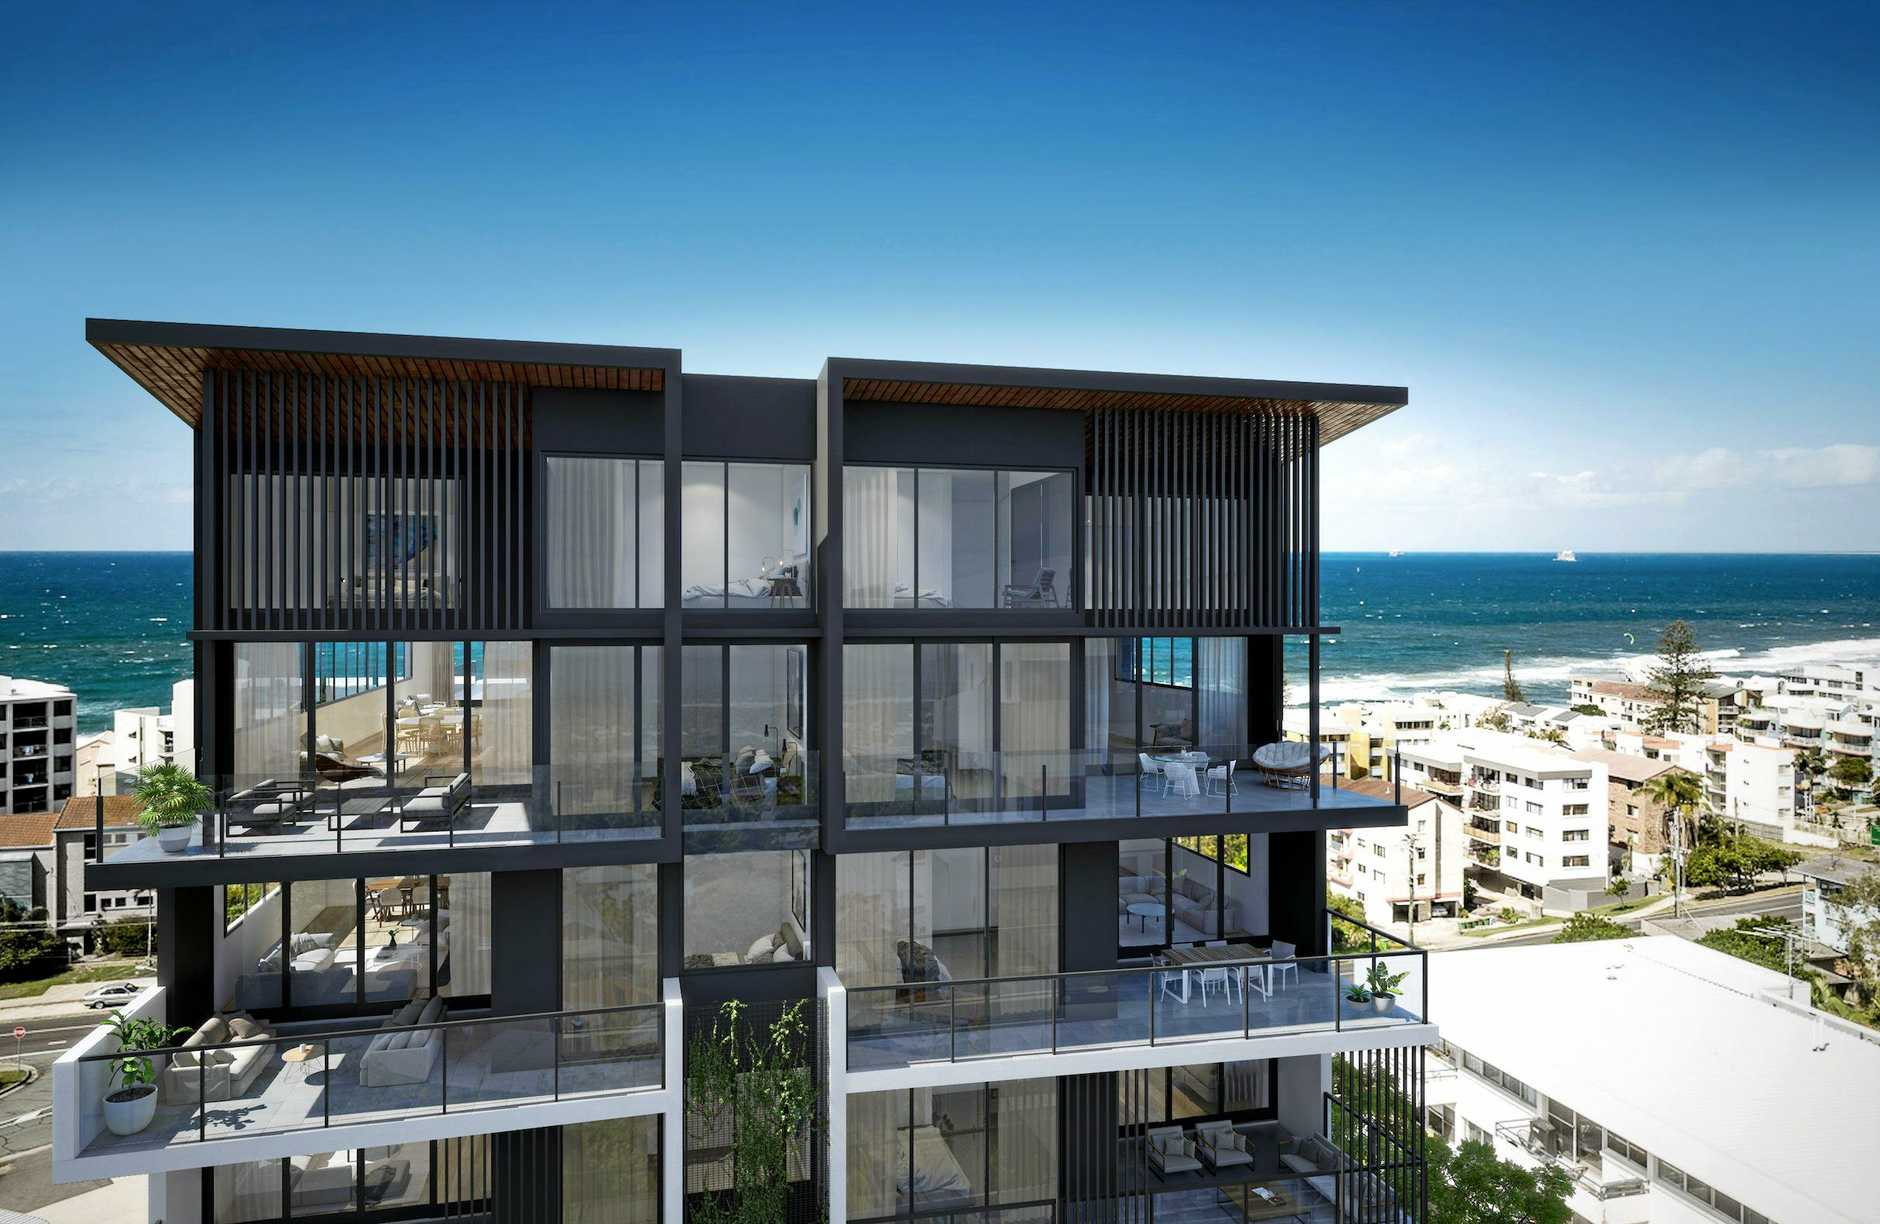 Artist impression of Mosaic Property Group's Cyan project at Kings Beach, scheduled to begin construction in February 2017.